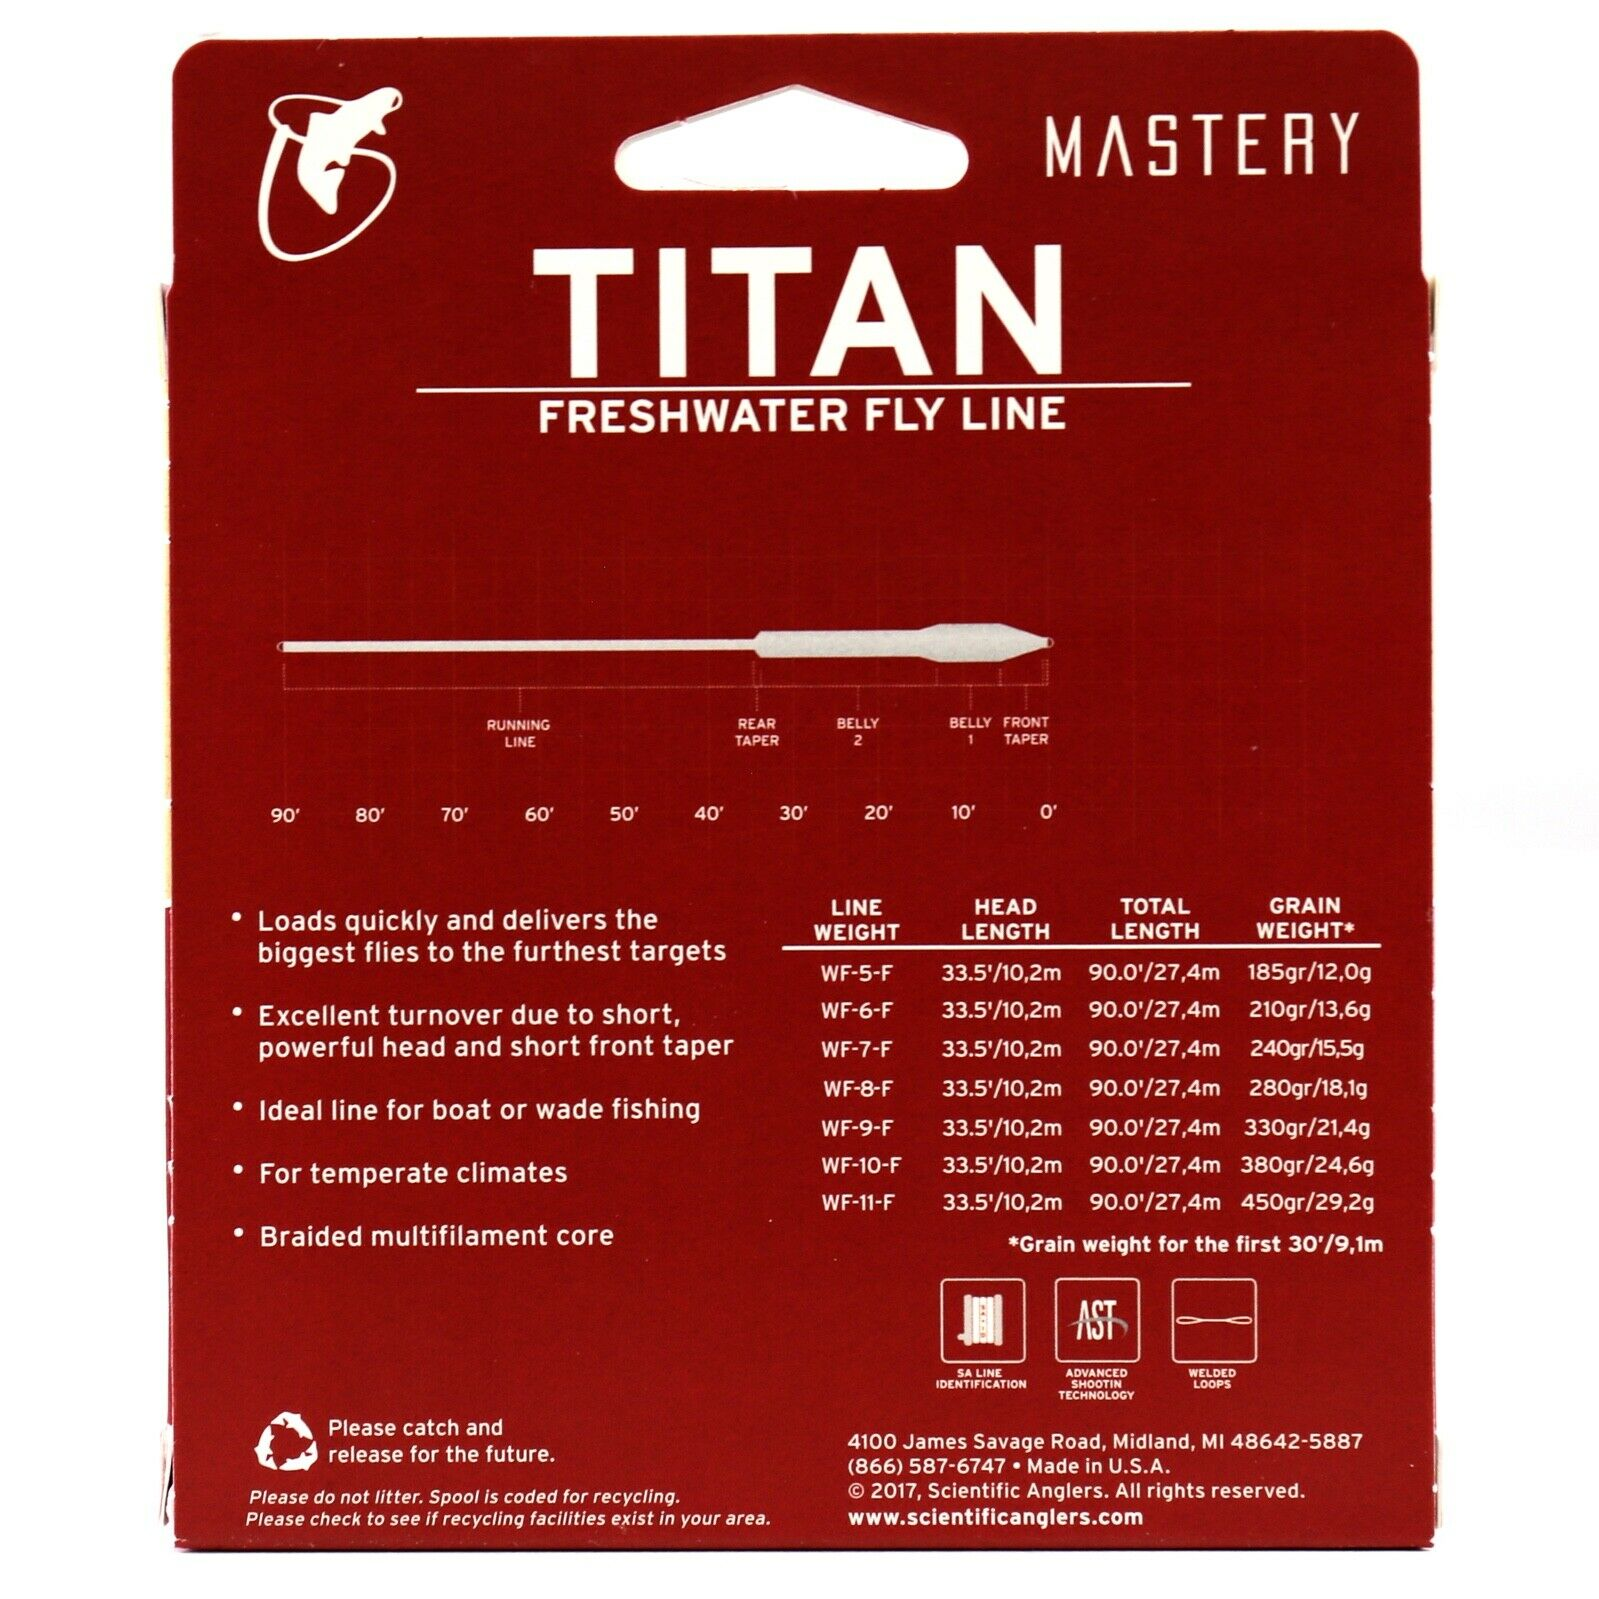 SCIENTIFIC ANGLERS MASTERY JUNGLE TITAN WF-8-F #8 WT FLOATING FLY LINE